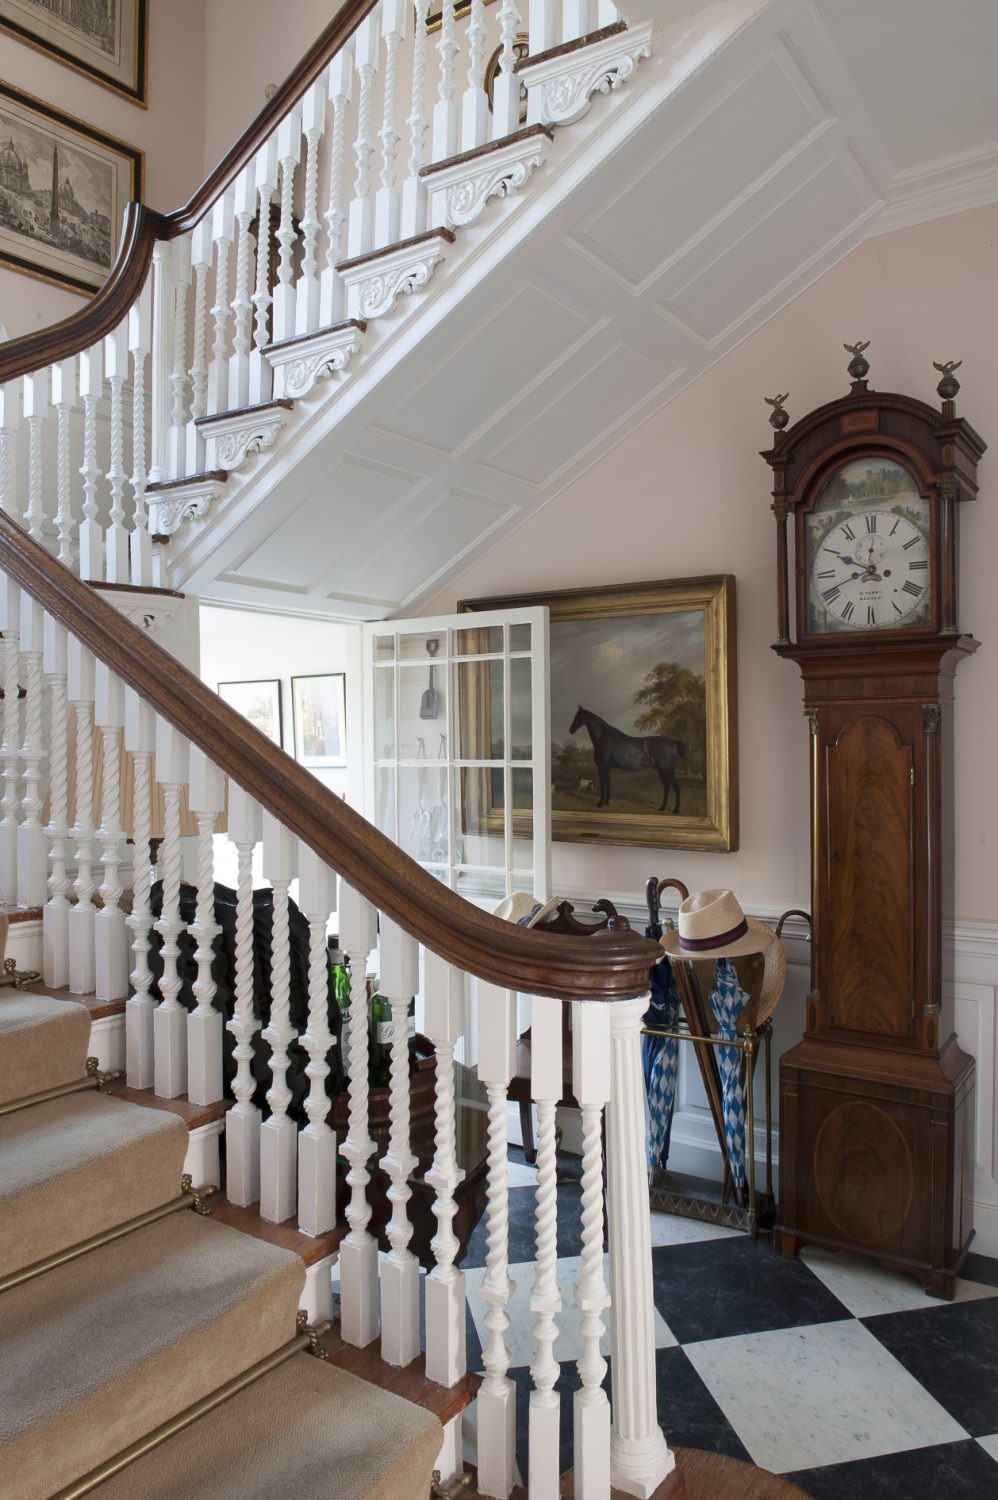 The elegantly curving staircase